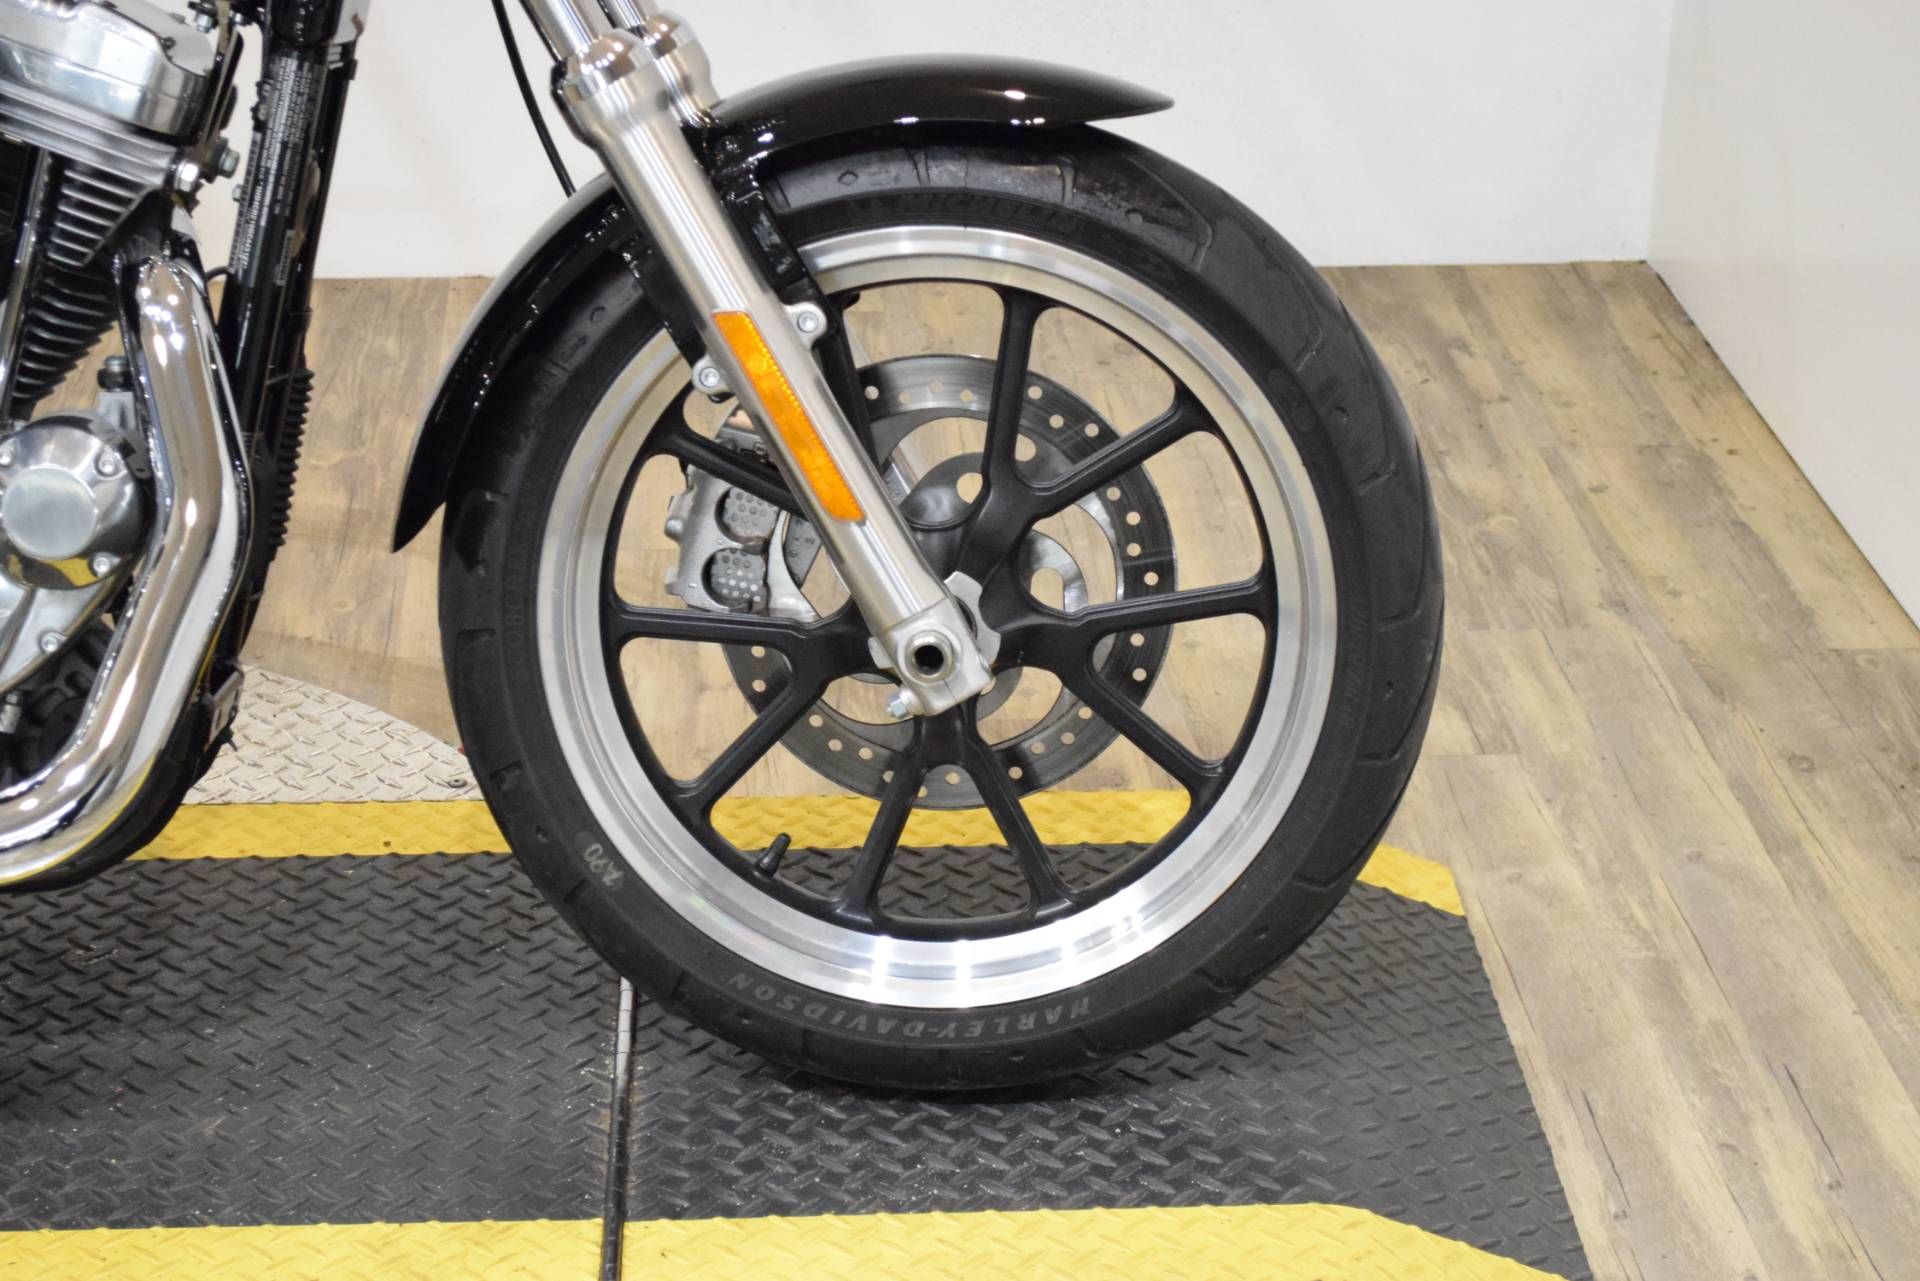 2016 Harley-Davidson XL883L in Wauconda, Illinois - Photo 2